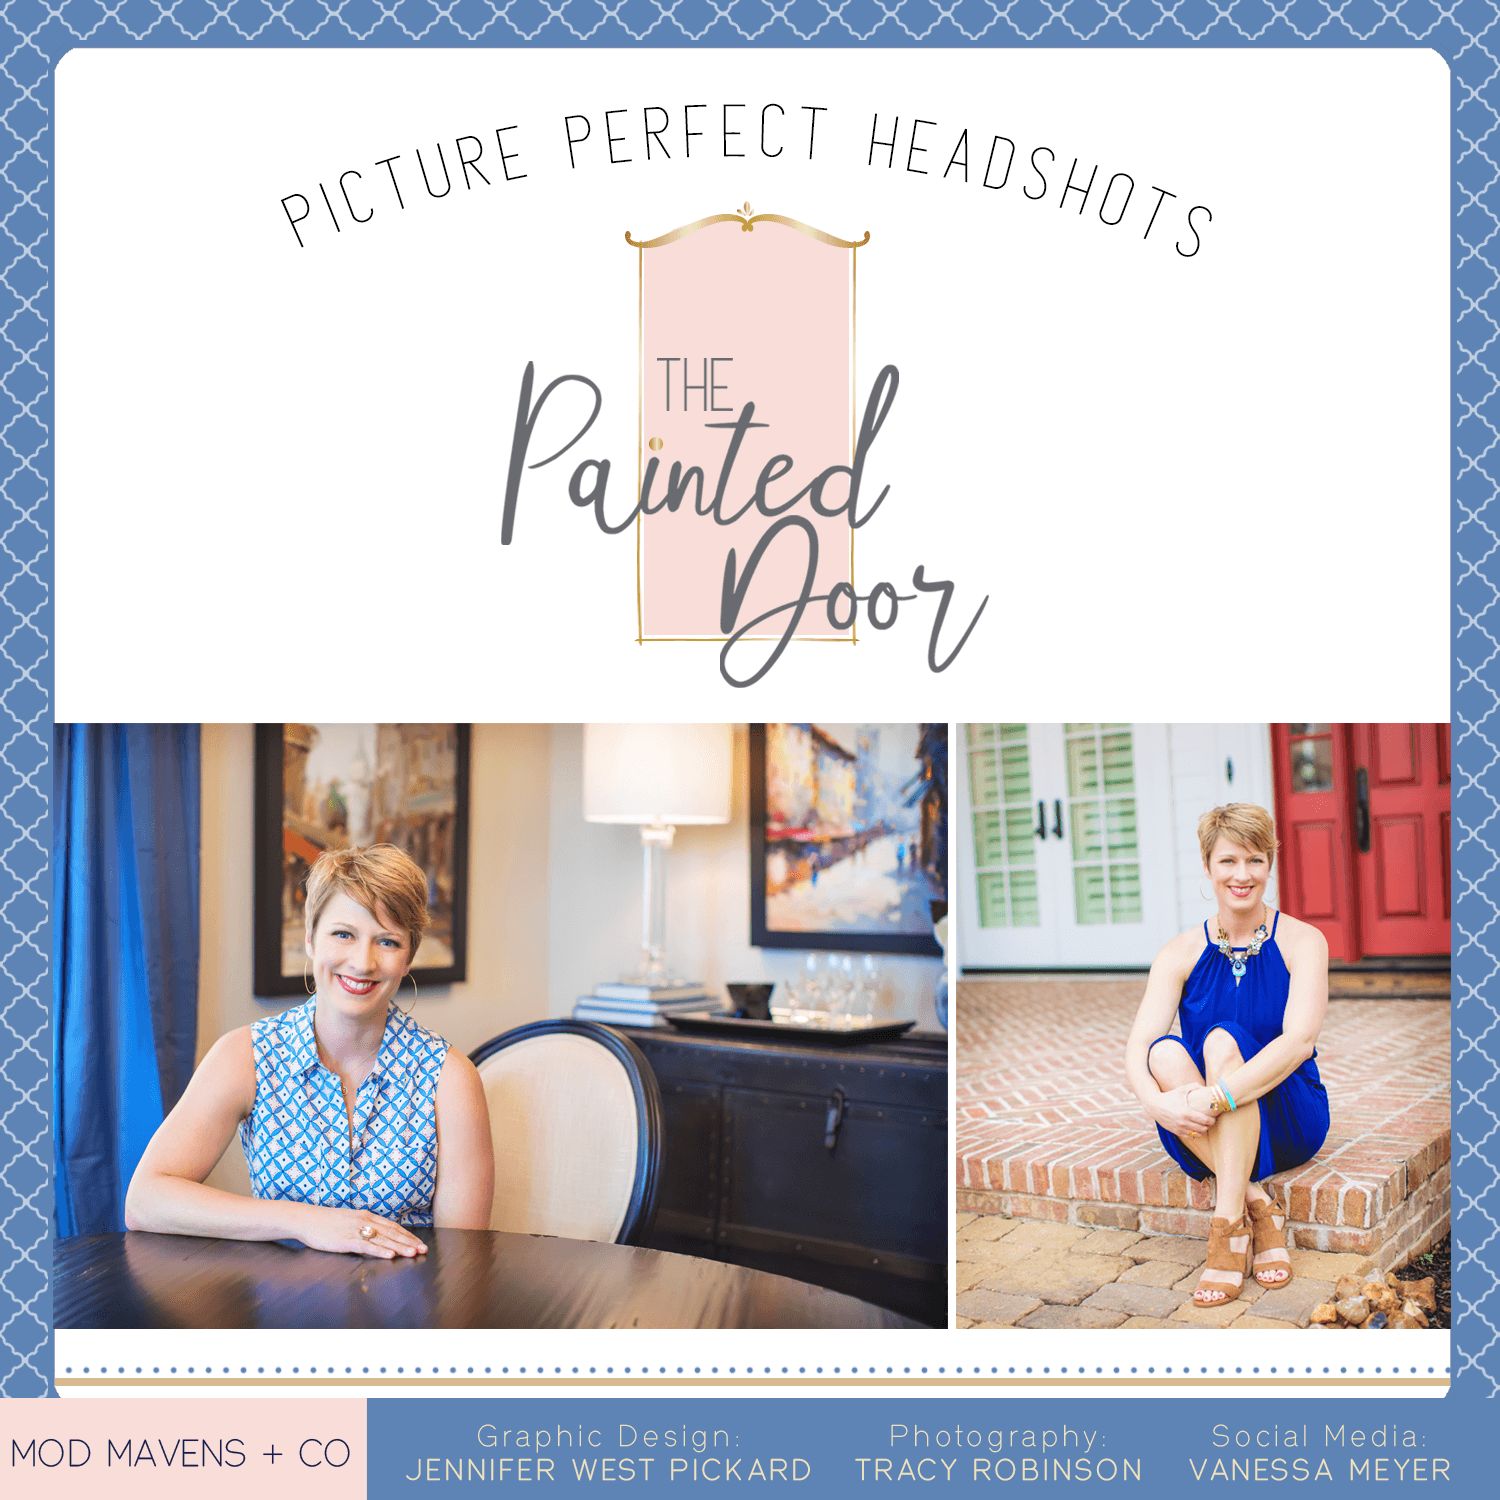 The Painted Door Picture Perfect Branding || Mod Mavens + Co